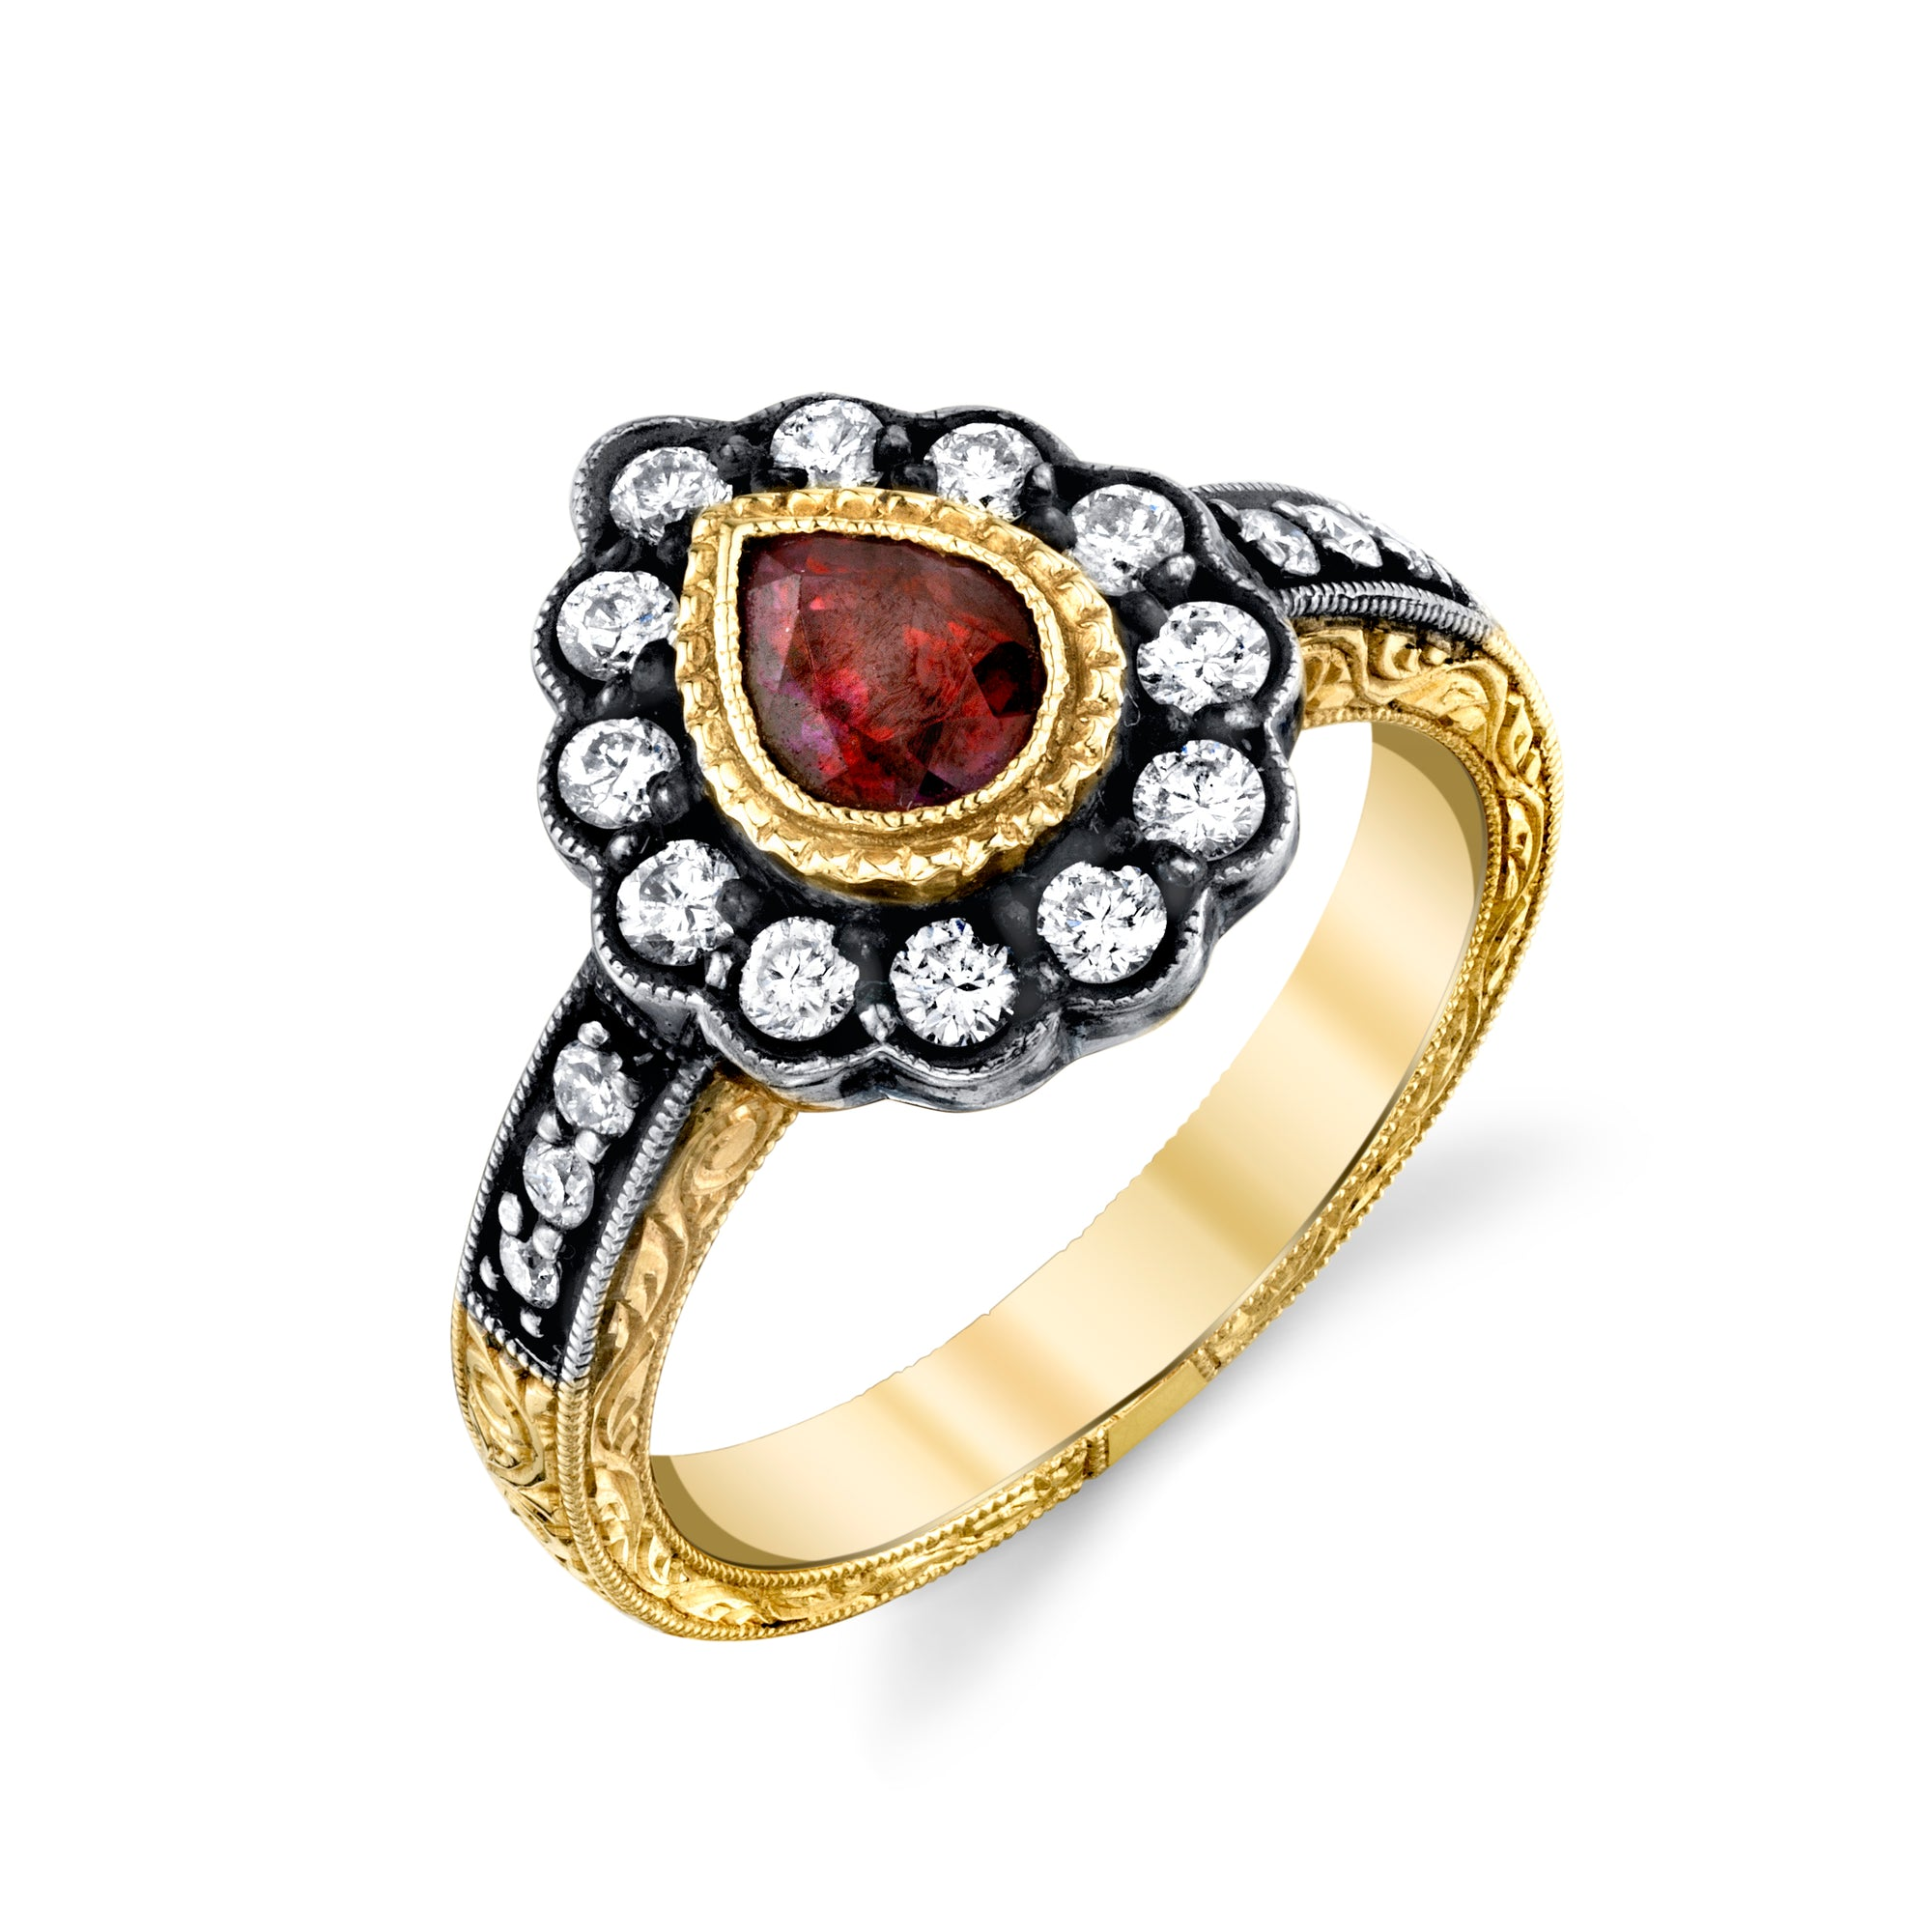 14k Yellow Gold, Ruby, and Diamond Hand Engraved Ring by Lord Jewelry - Talisman Collection Fine Jewelers